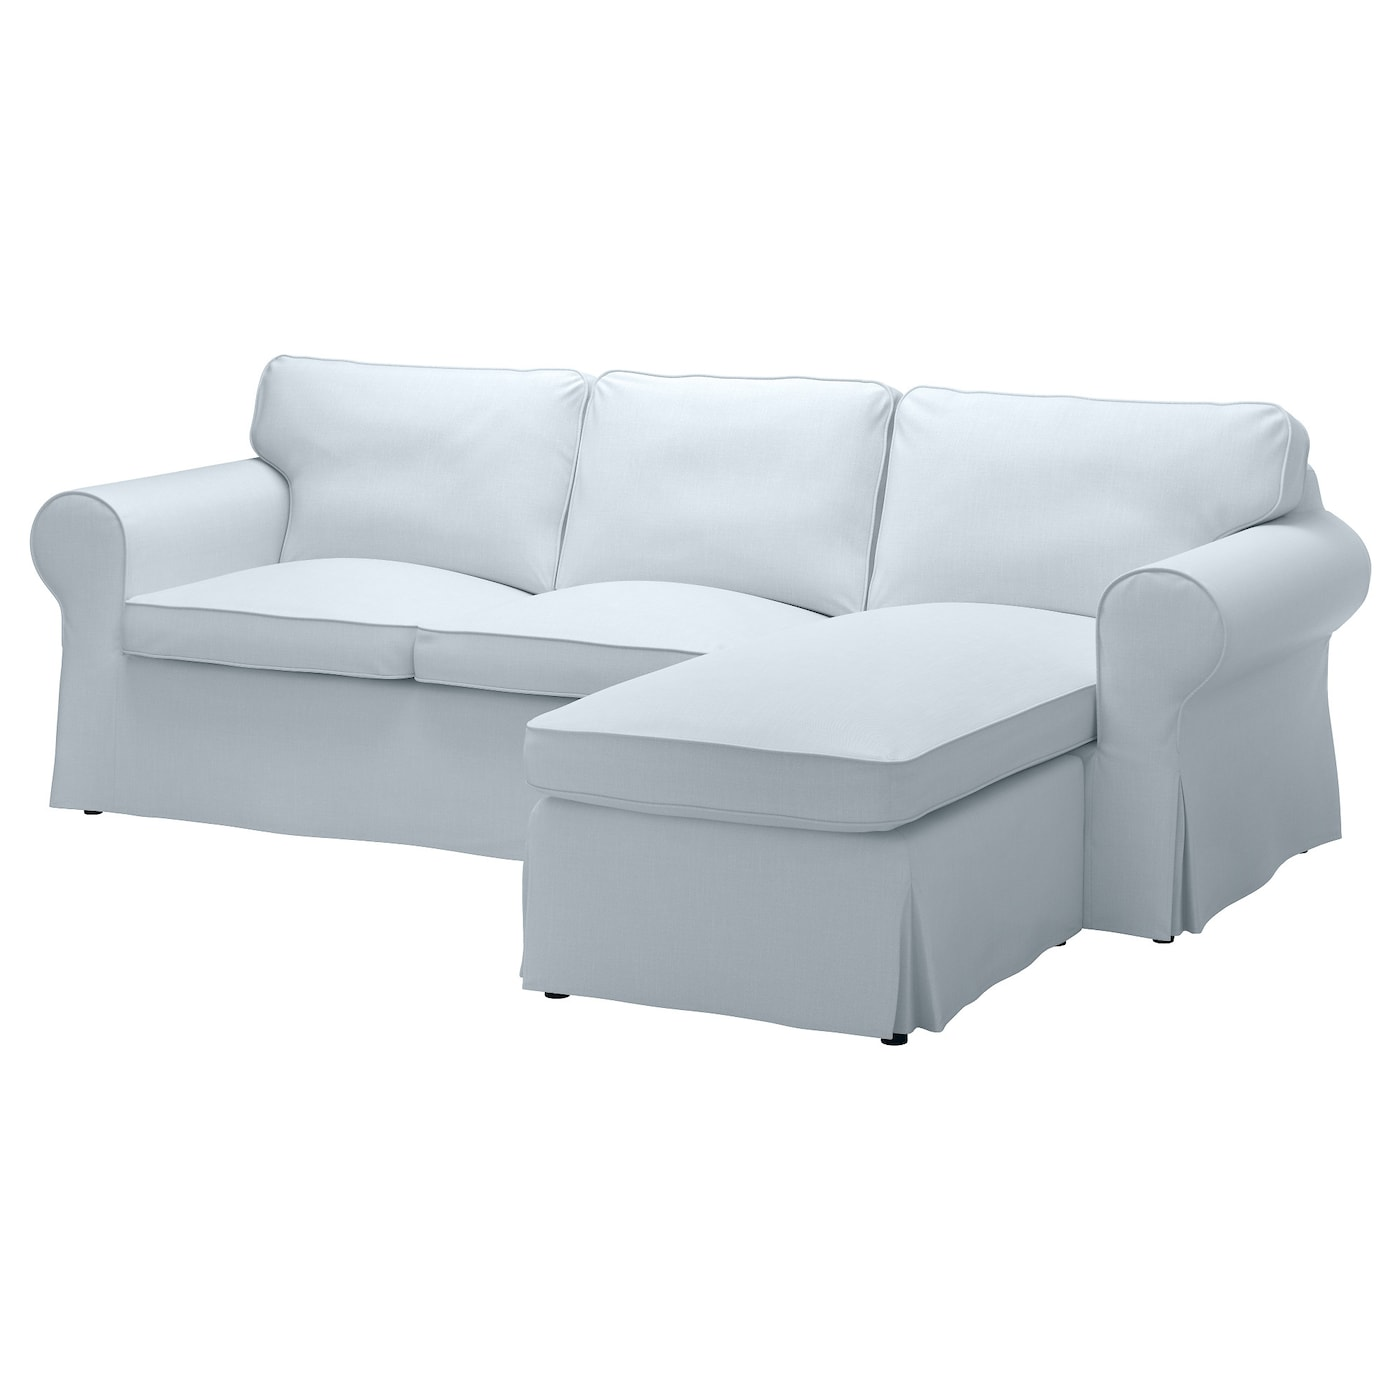 Ektorp two seat sofa and chaise longue nordvalla light for Chaise longue en toile pliante